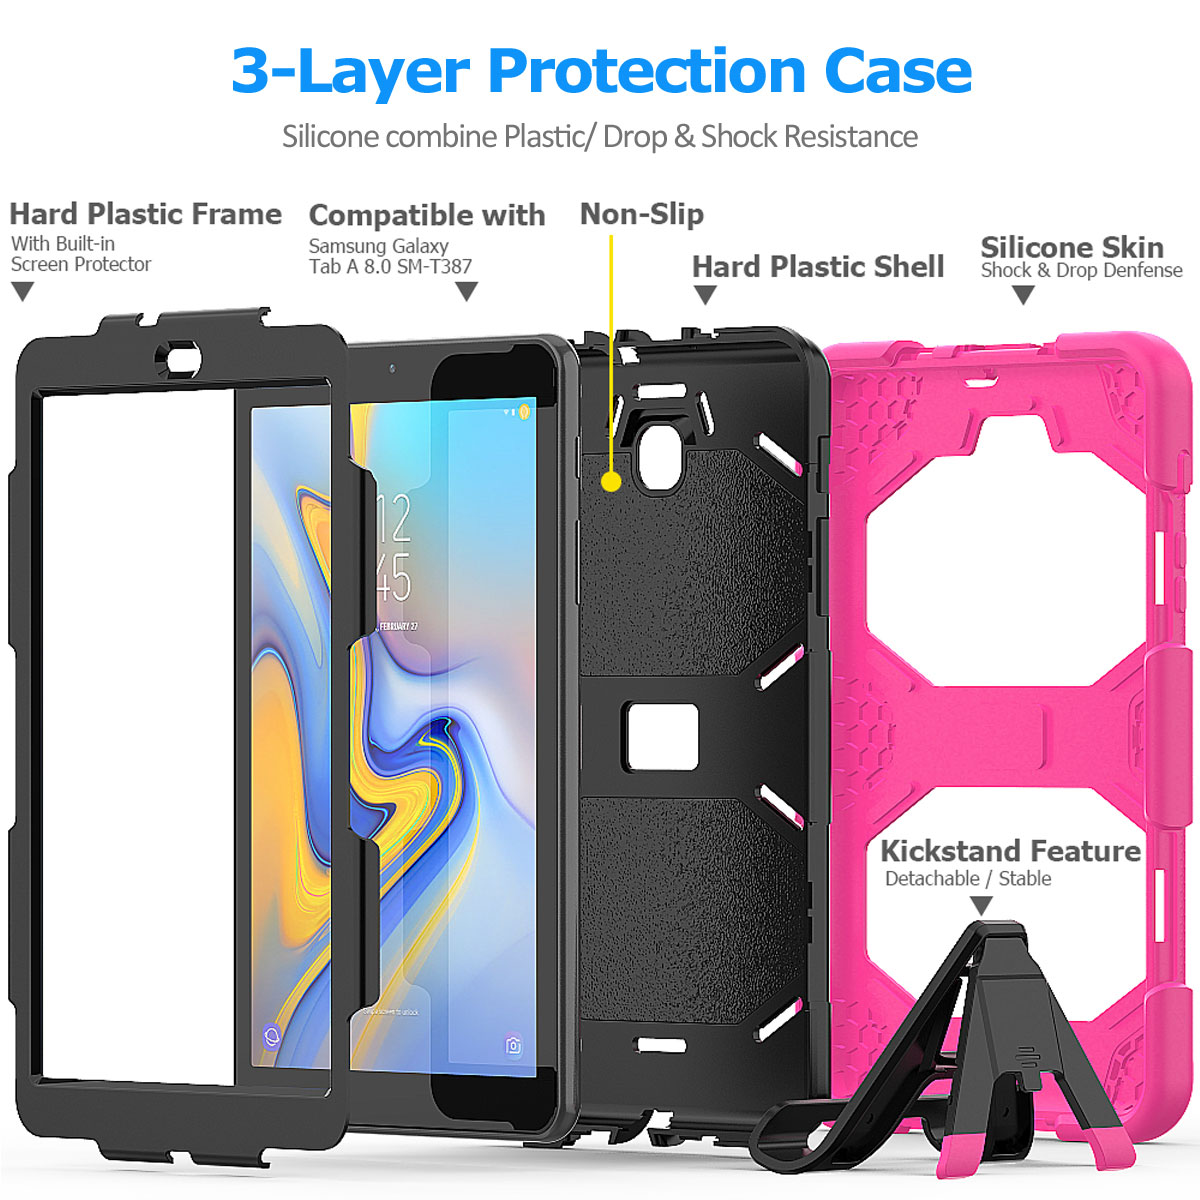 Rugged-Hard-Case-For-Samsung-Galaxy-Tab-A-8-0-2018-SM-T387-with-Screen-Protector thumbnail 14